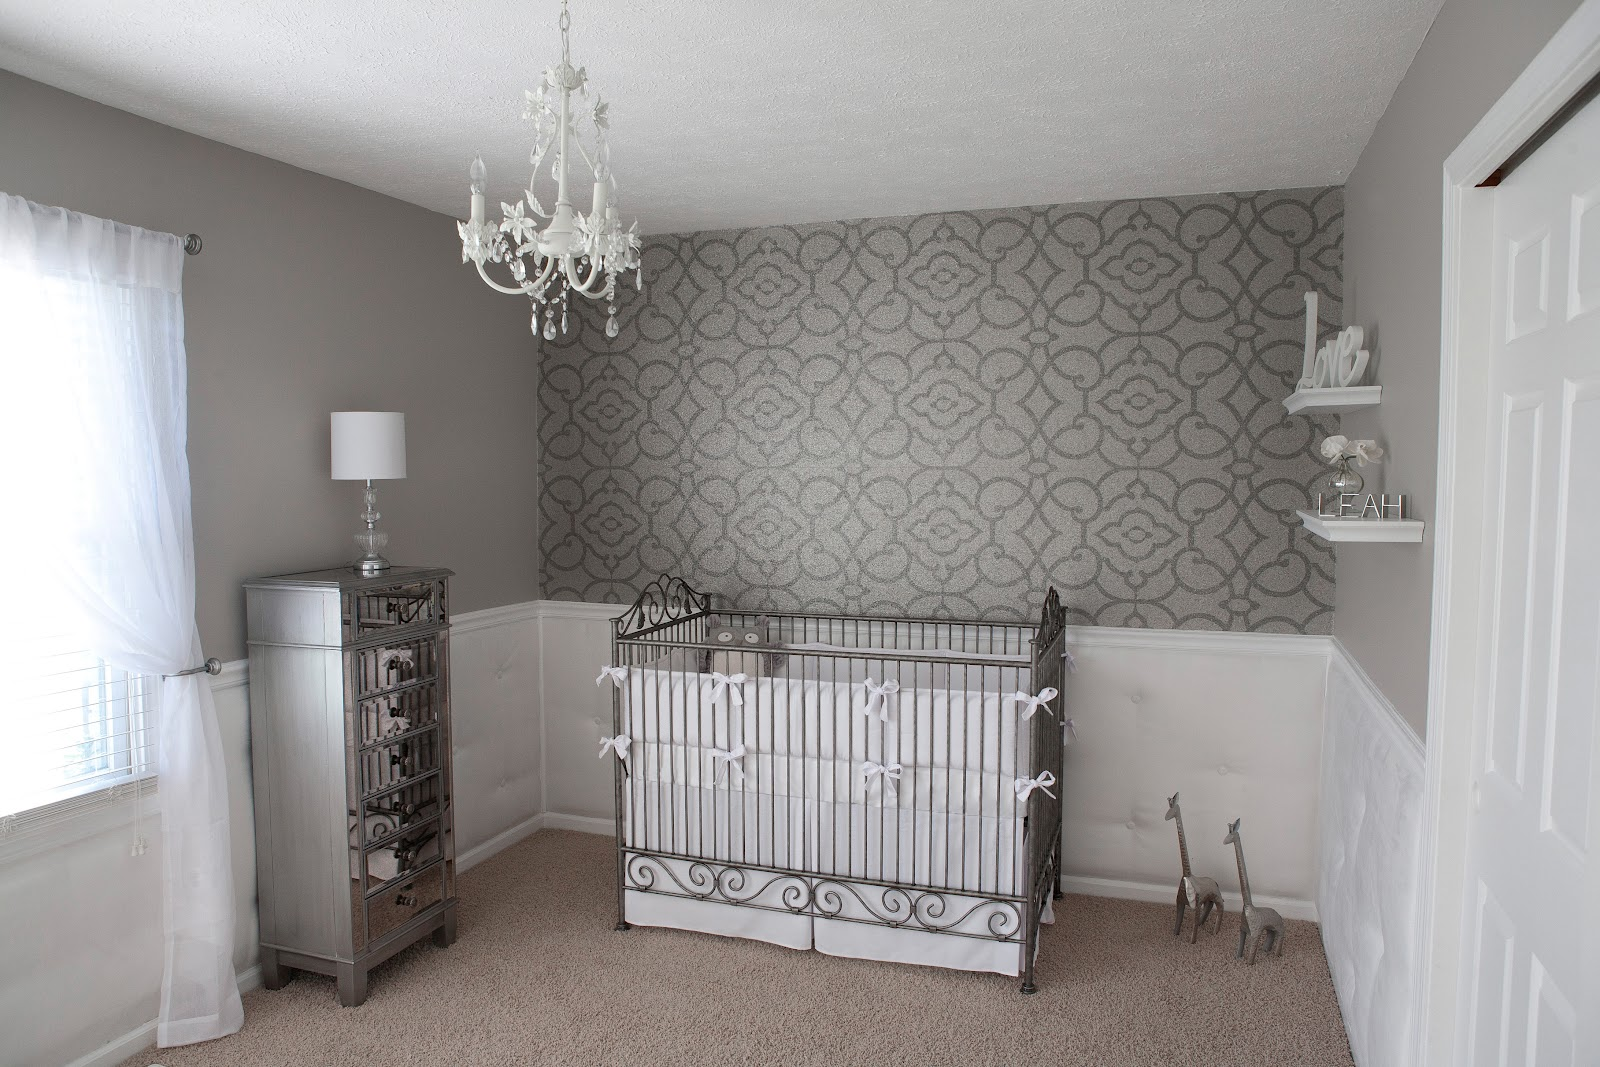 Wall With Wallpaper For The Nursery